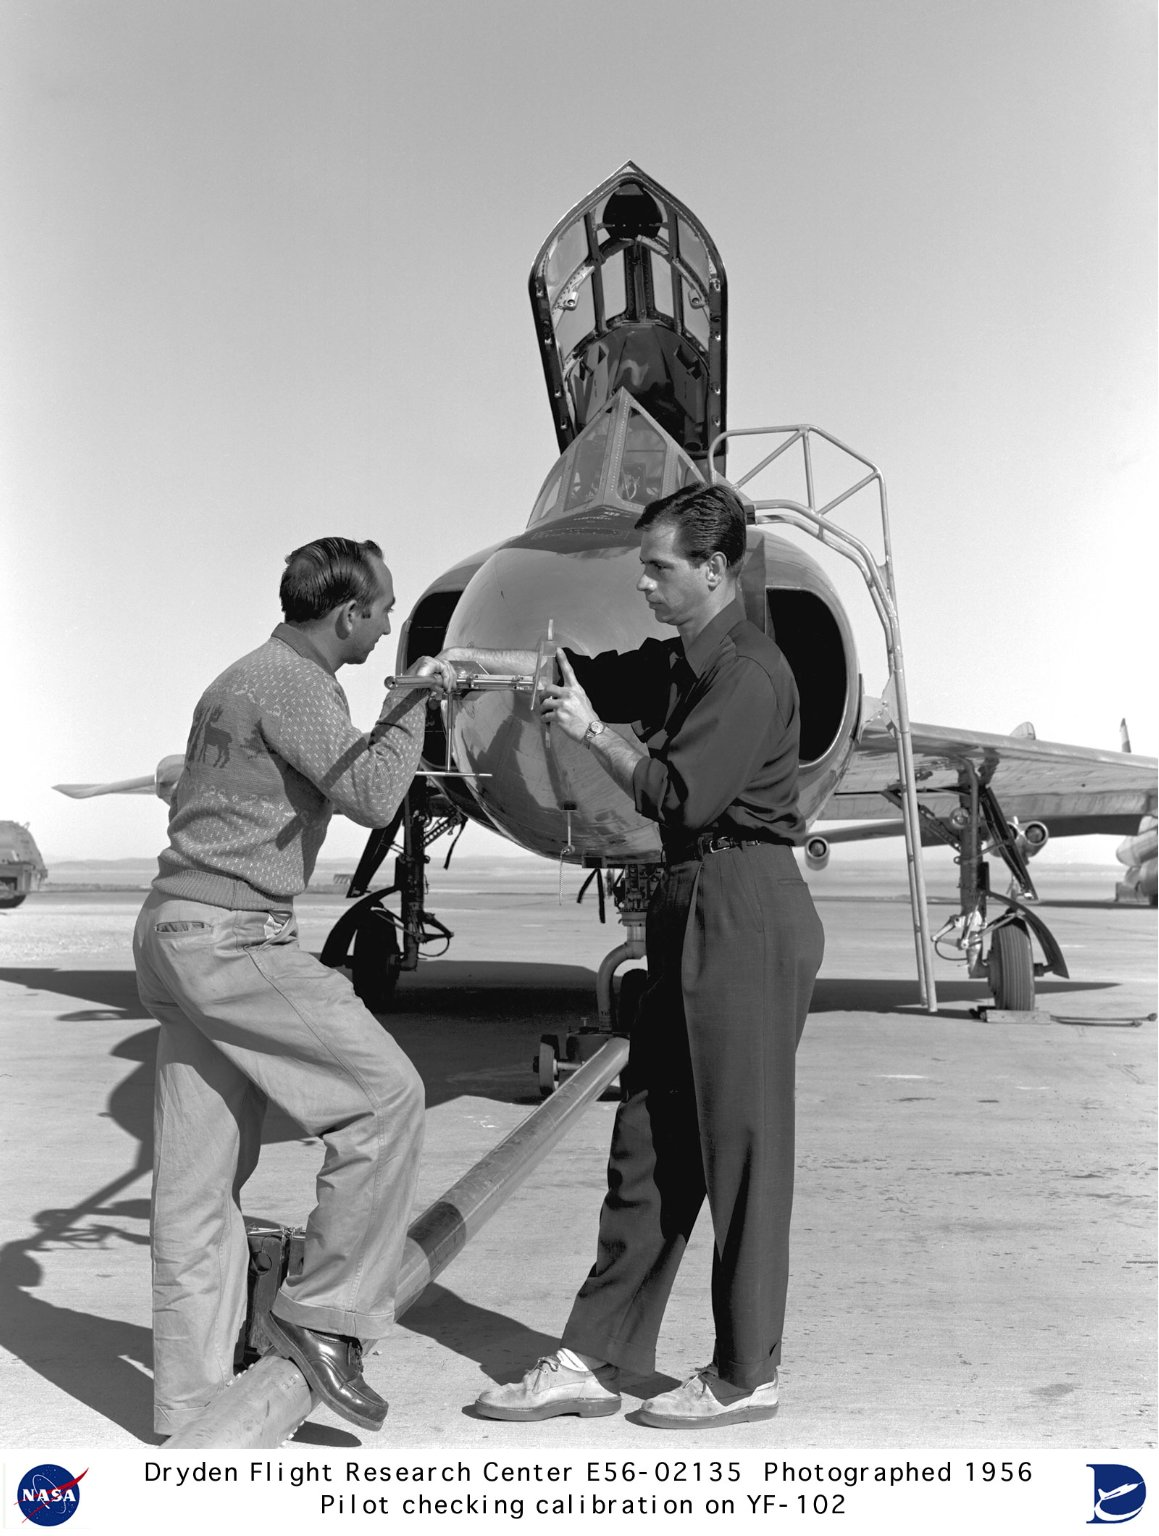 Engineers checking nose boom on YF-102